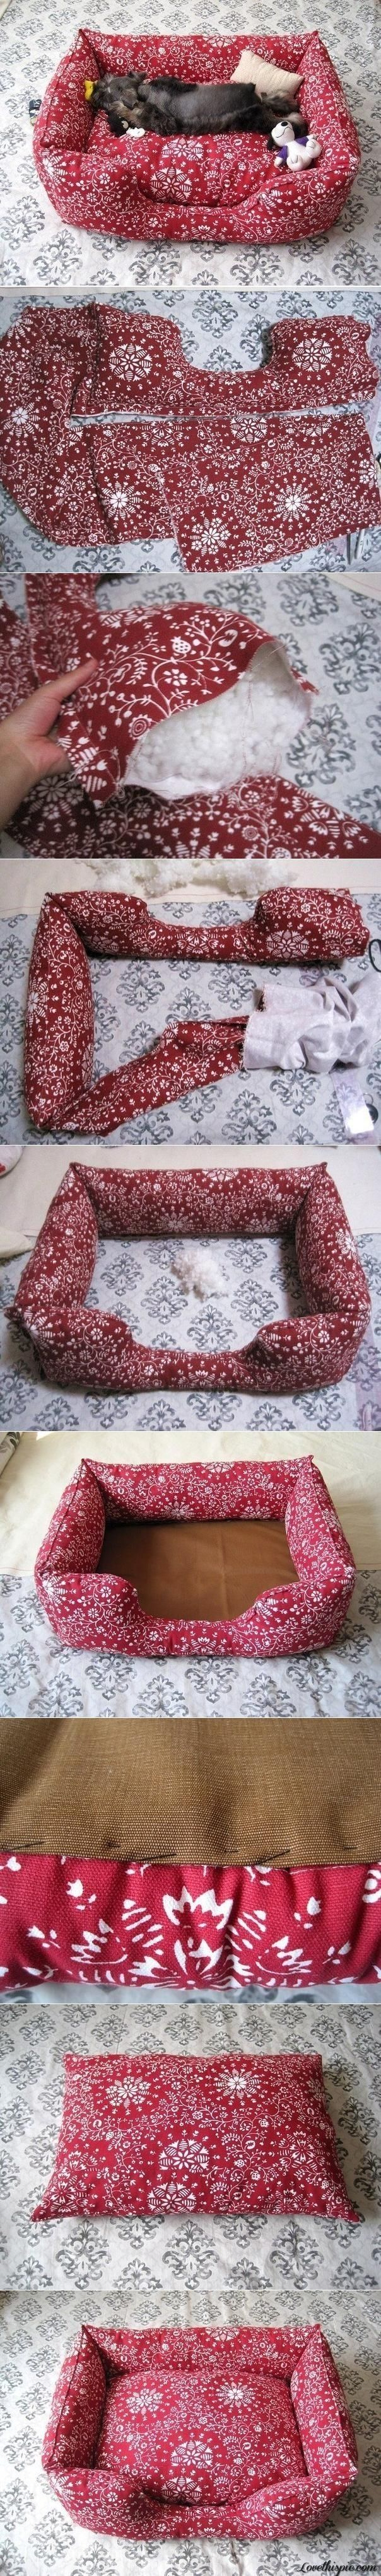 DIY Fabric Pet Sofa diy furniture crafts craft ideas diy ideas home diy pet bed fabric (NO pattern, just the picture)